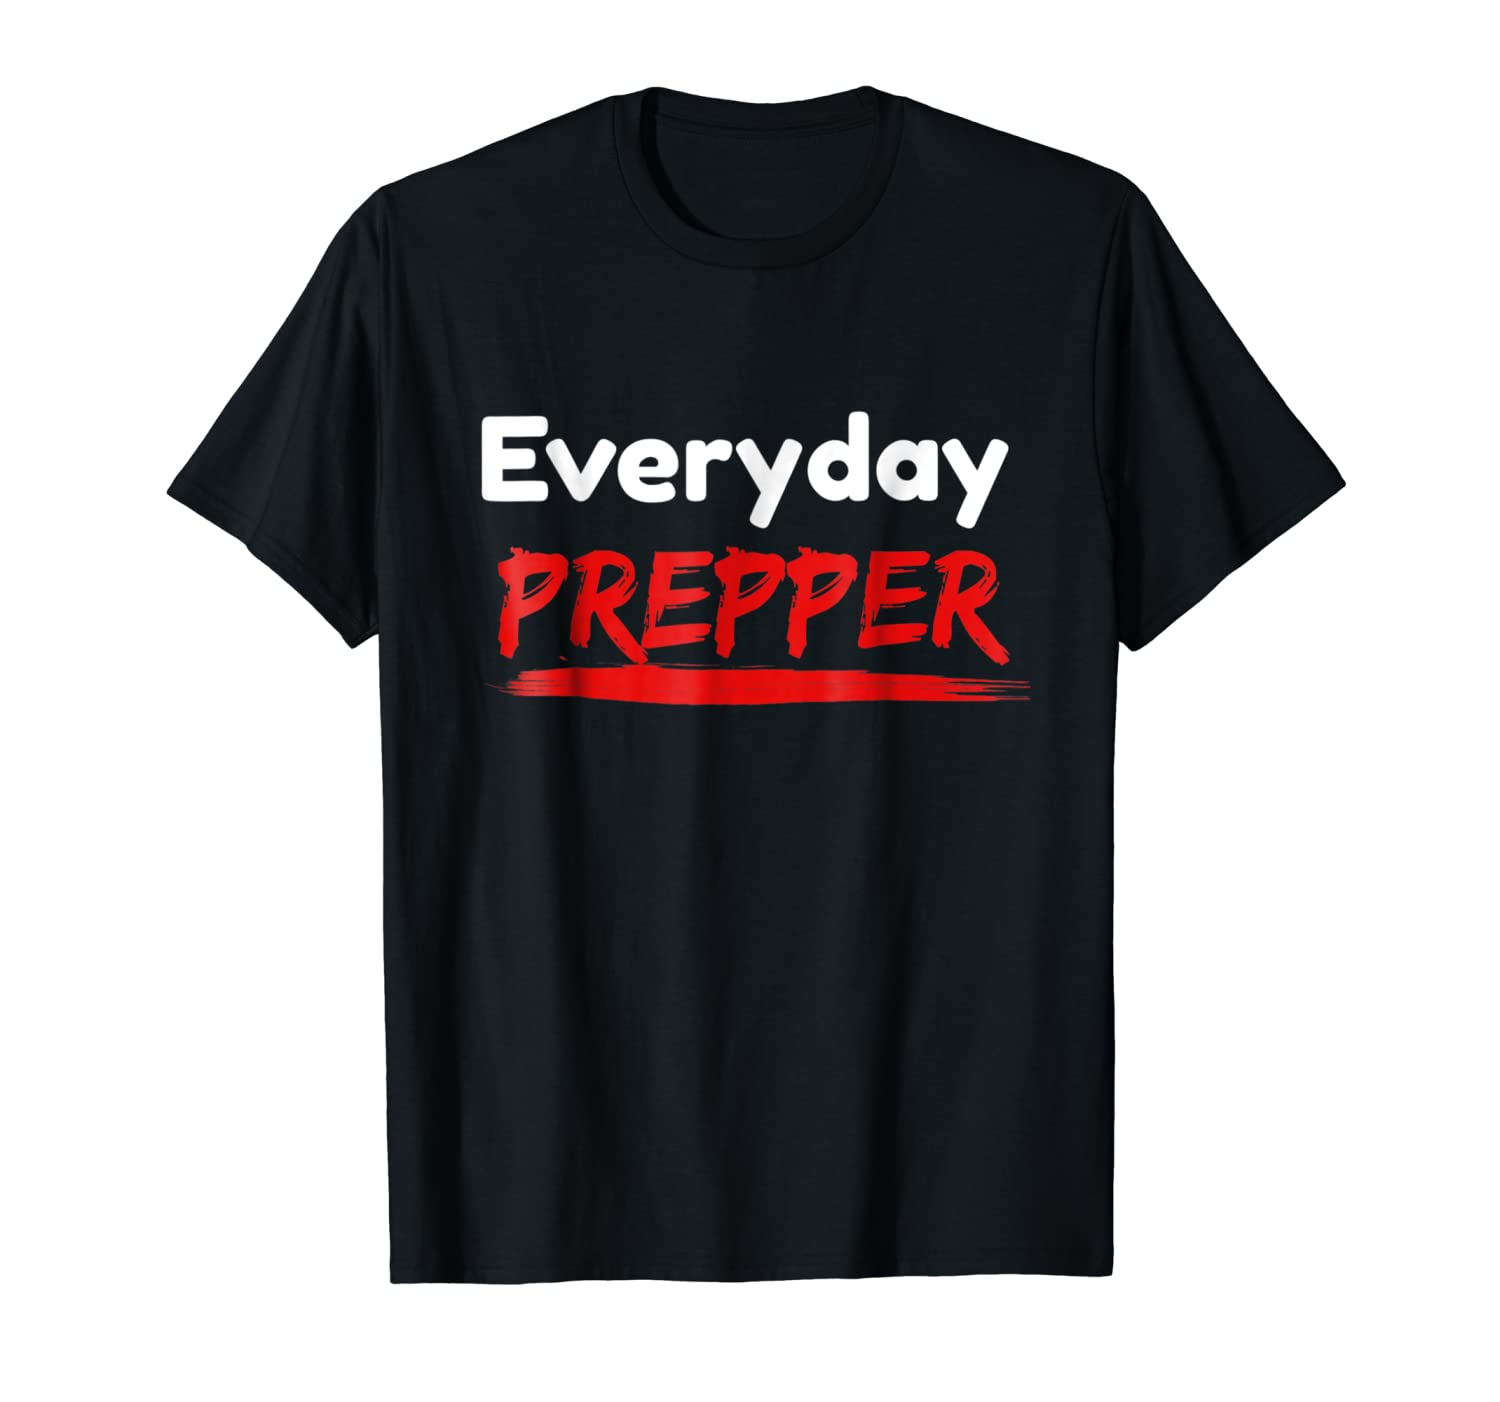 Everyday Prepper T Shirt for Preppers